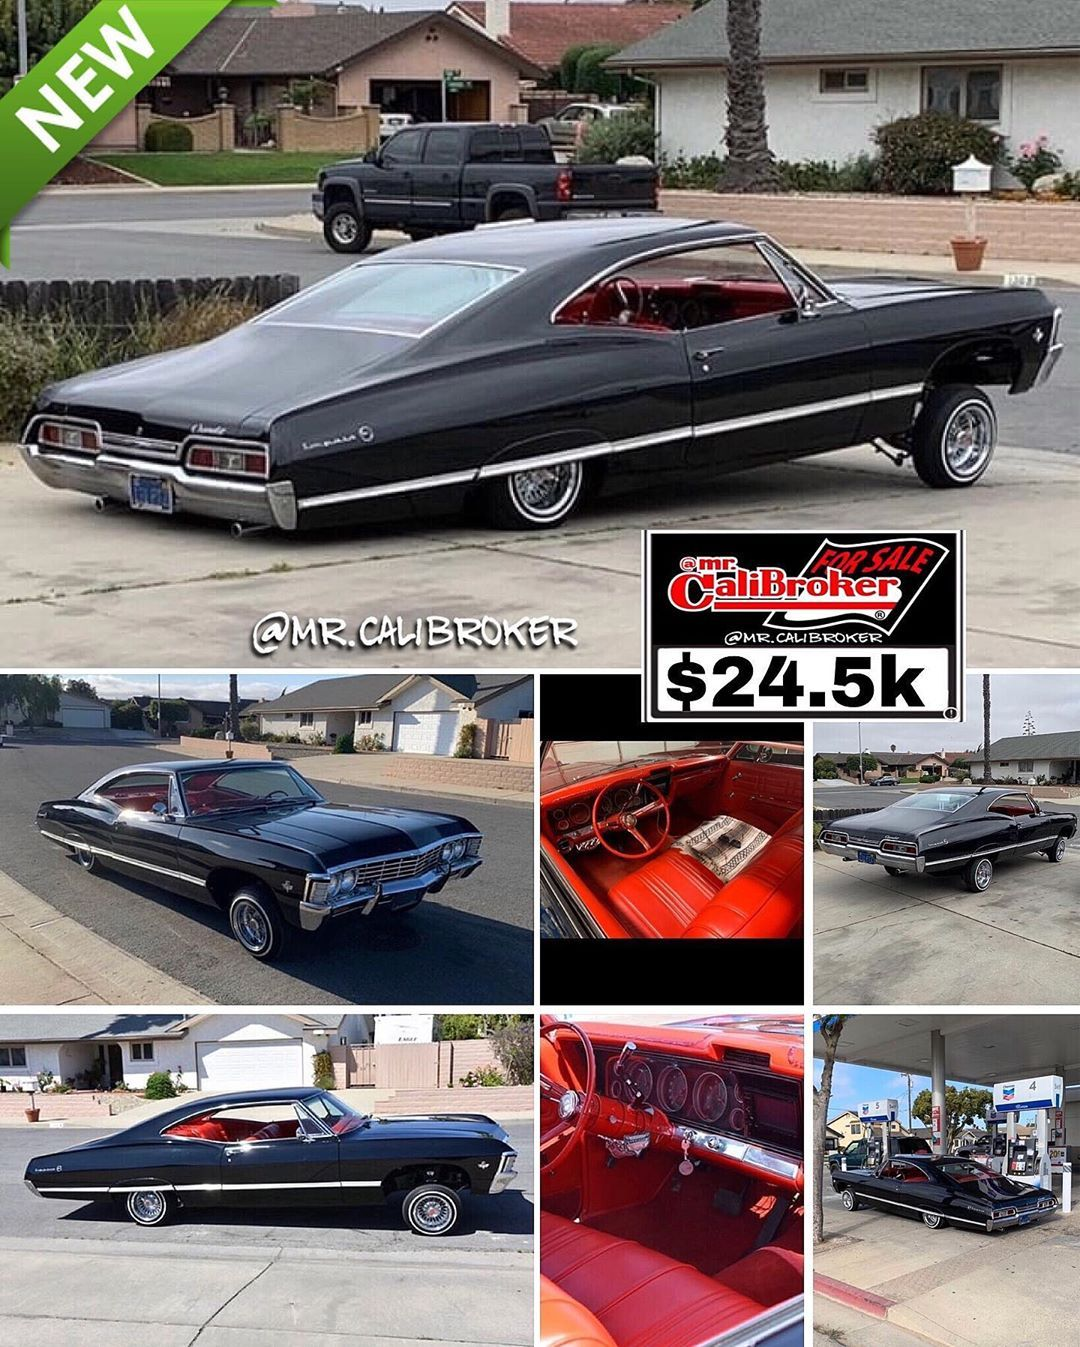 Mr Calibroker 4sale Forsale 1967 Chevy Impala Dressed